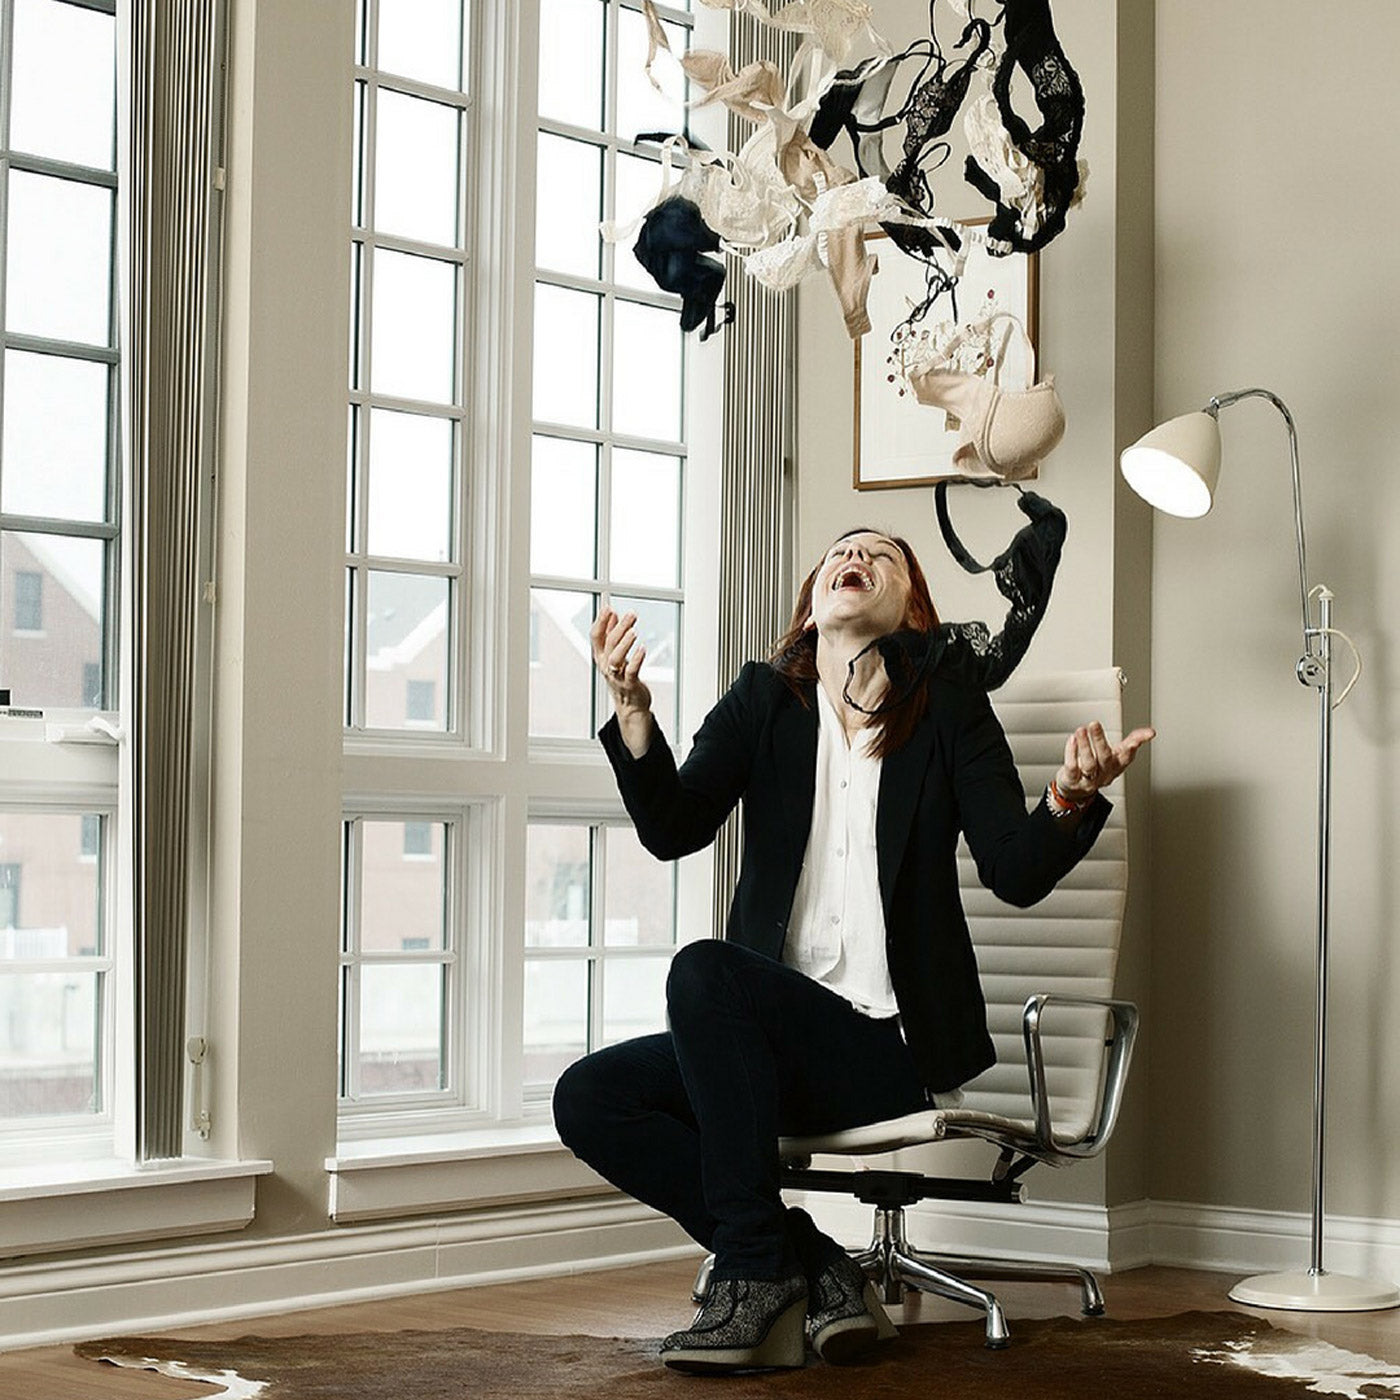 Norma Loehr sitting on the edge of a white chair, she has just tossed an armful of about 20 bras above her head and she is smiling looking up